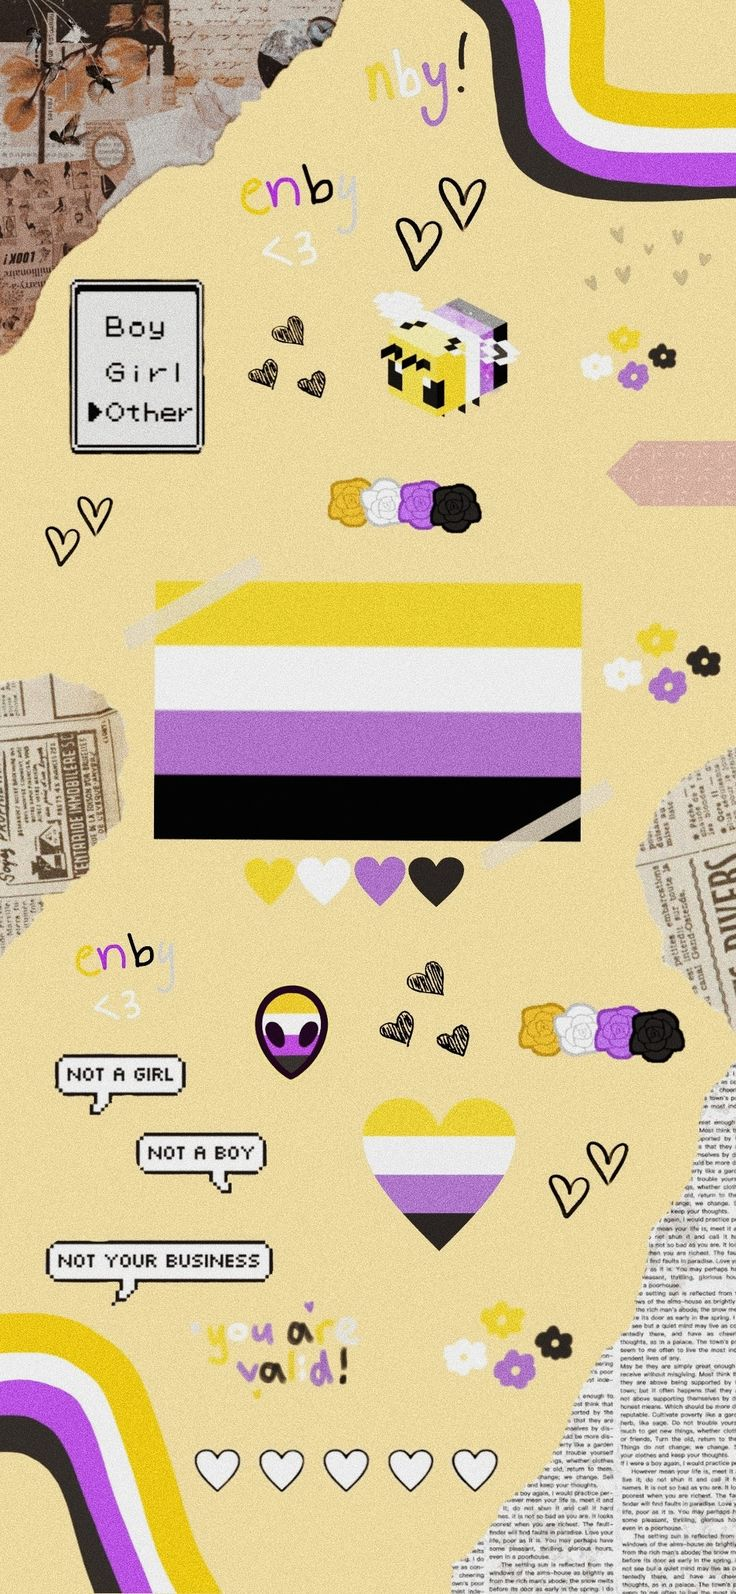 Rainbow Wallpaper, Iphone Wallpaper, Phone Backgrounds, Nonbinary Flag, Phineas E Ferb, Lgbtq Flags, Pansexual Pride, Gay Aesthetic, Lgbt Love